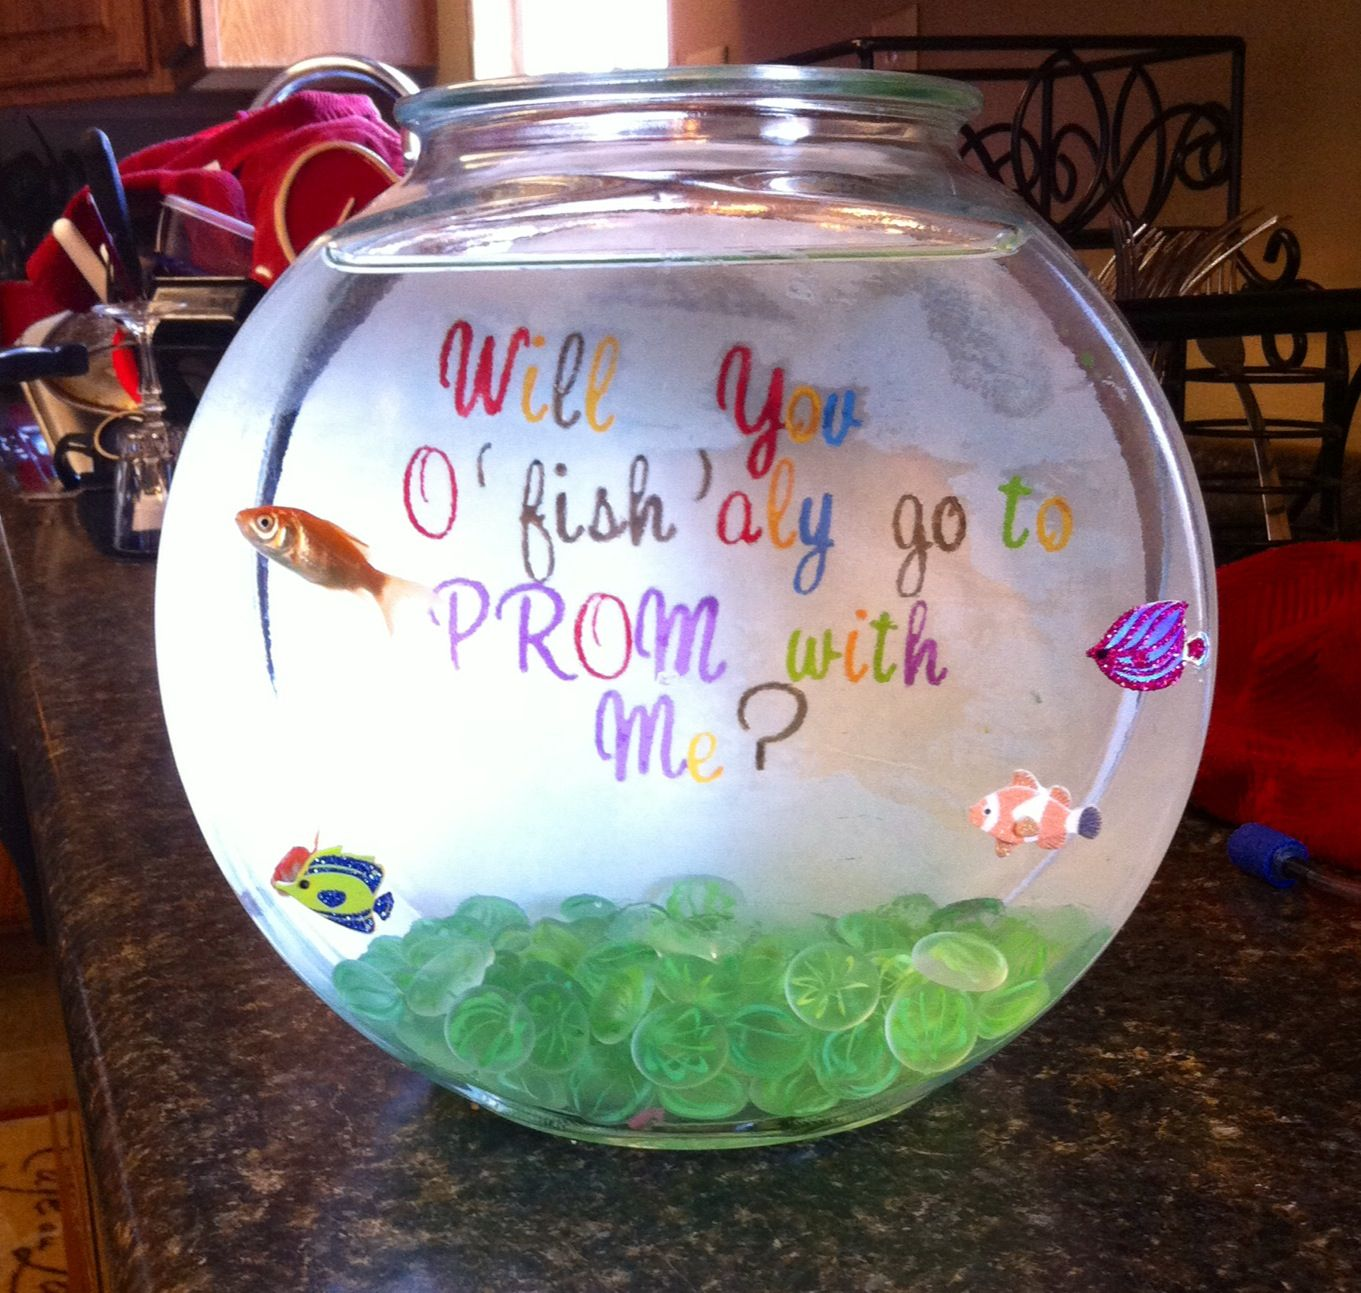 Will You O Fish Aly Go To Prom With Me Cute Ways To Get